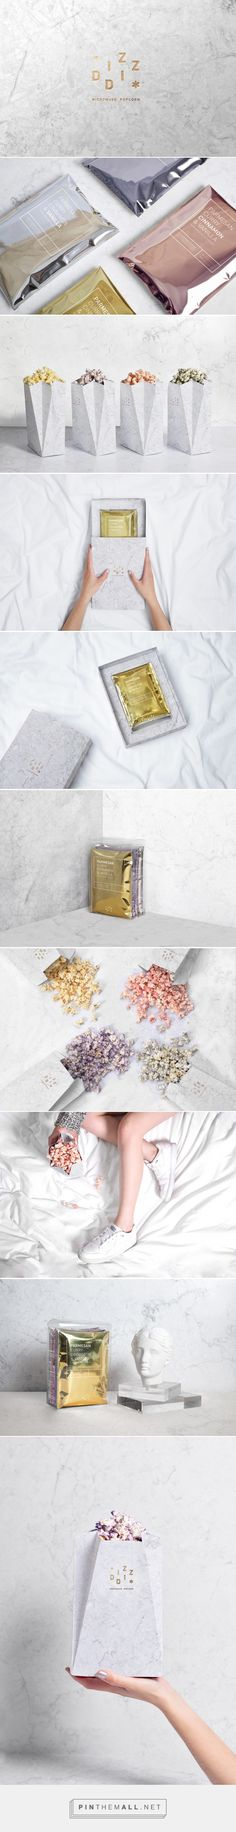 Diz-Diz Popcorn Packaging by Tatabi Studio on Behance | Fivestar Branding – Design and Branding Agency & Inspiration Gallery